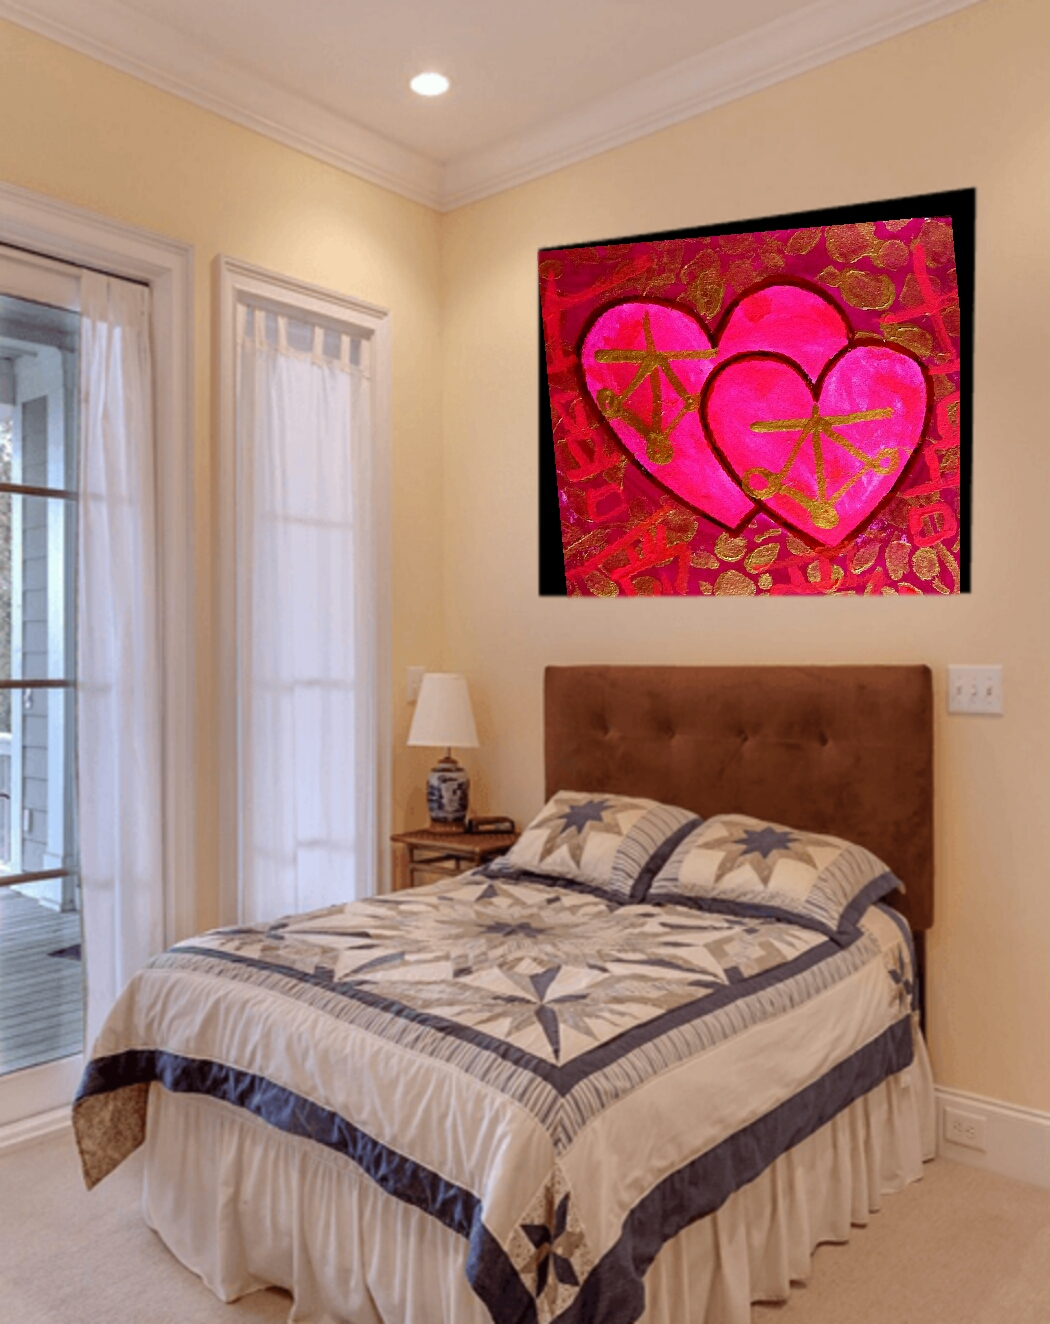 Feng shui simple cures how to rekindle the fire of for Feng shui fireplace in bedroom